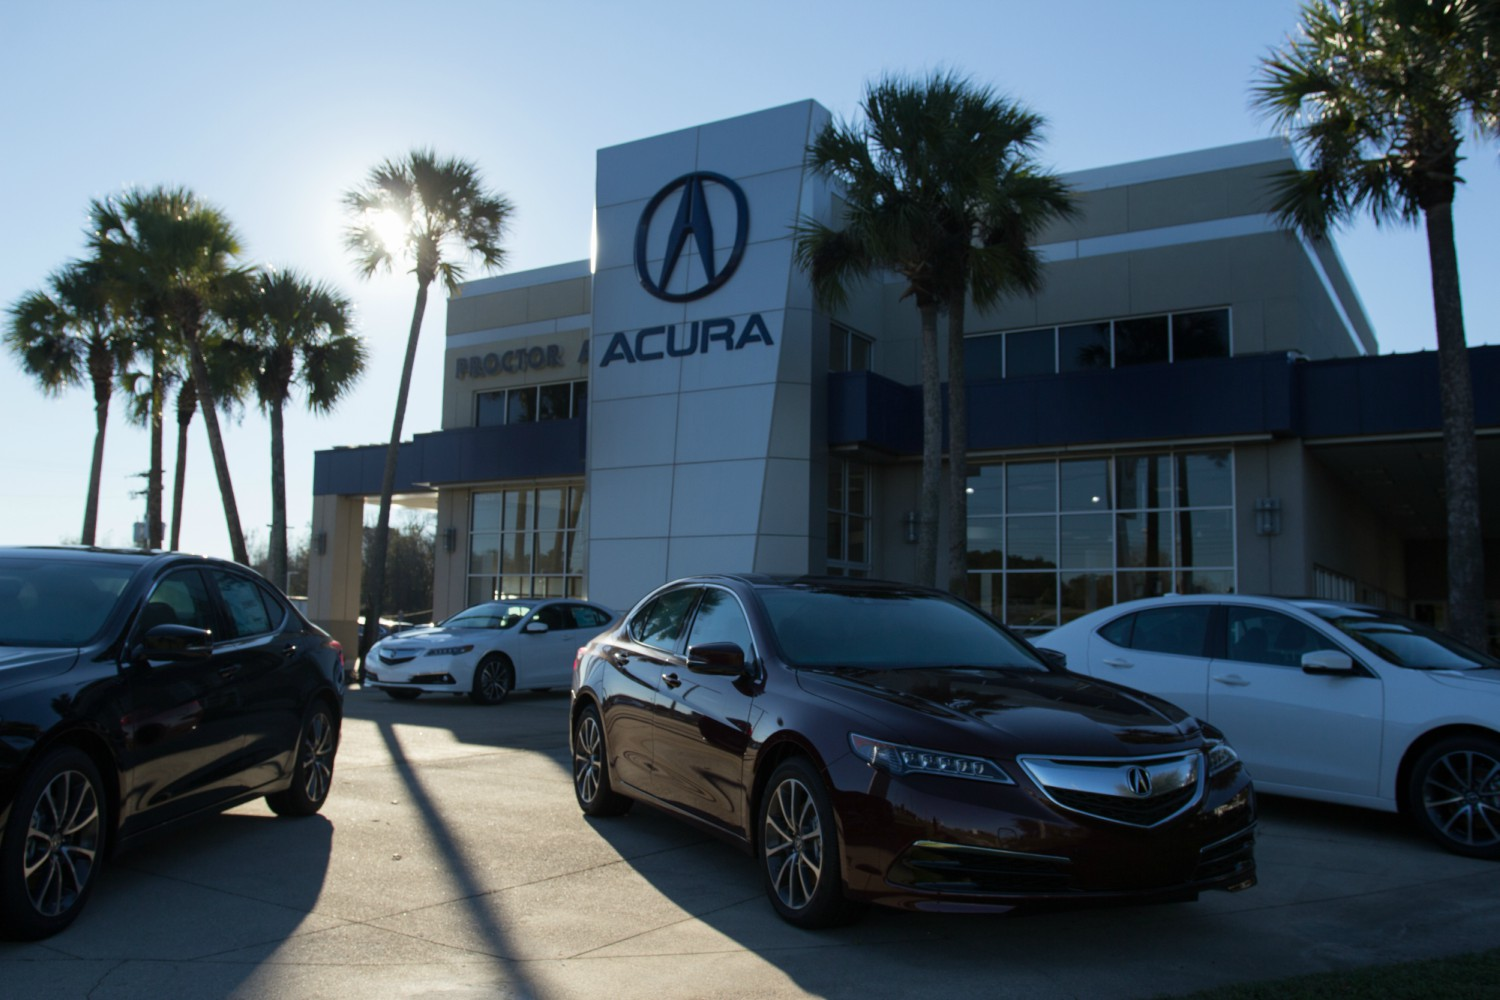 tallahassee fl proctor acura find proctor acura in tallahassee fl. Black Bedroom Furniture Sets. Home Design Ideas